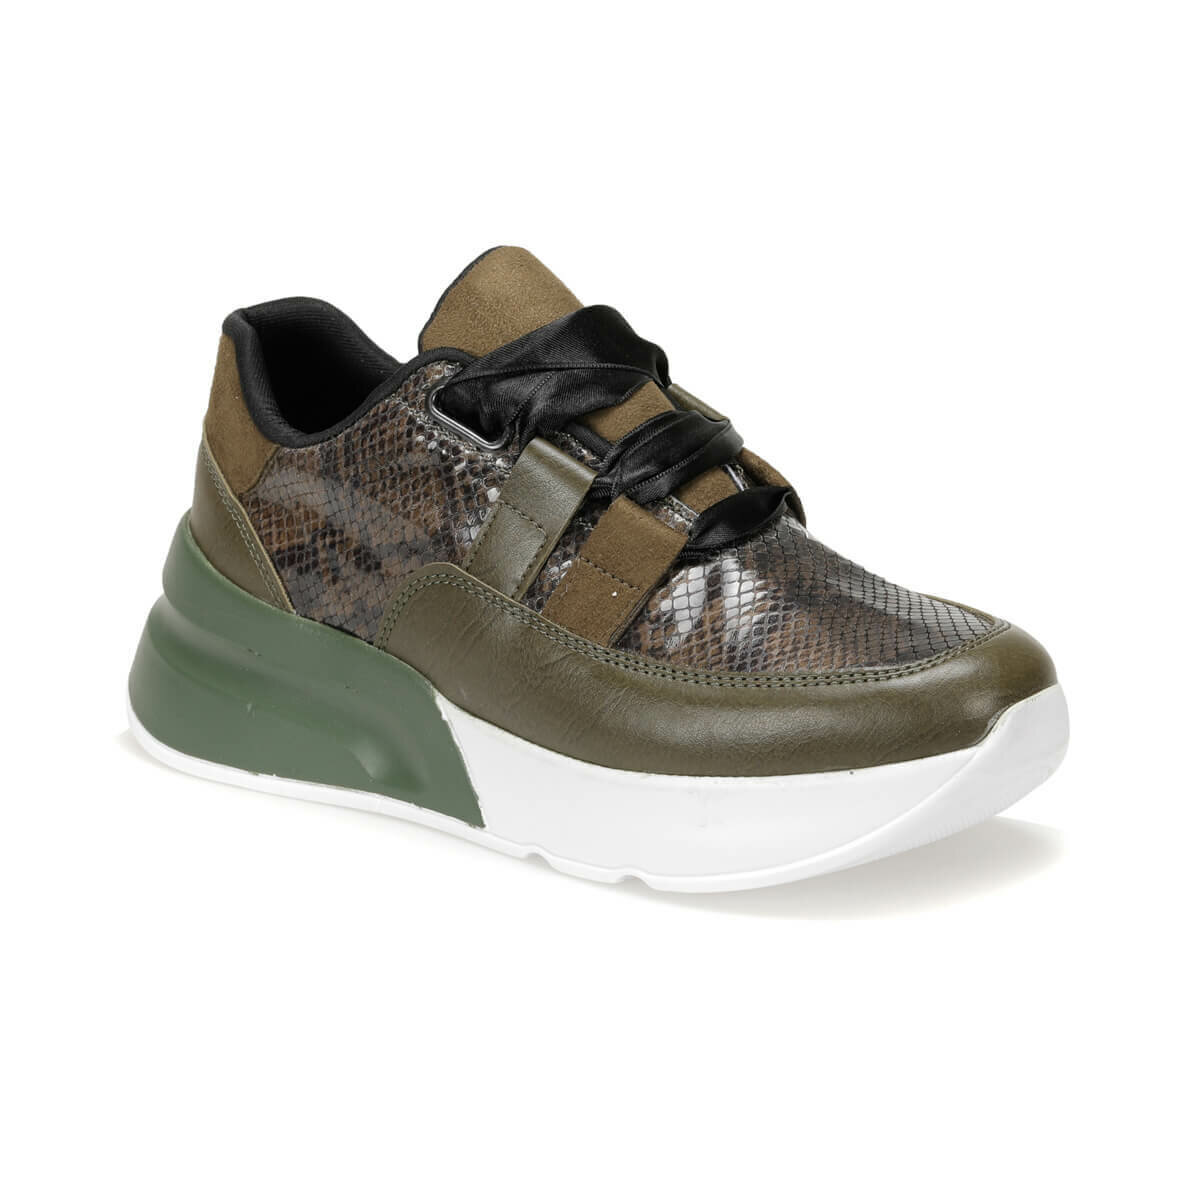 FLO Green Khaki Women's Sneakers Casual Sport Shoes BUTIGO KİBA56Z SKIN